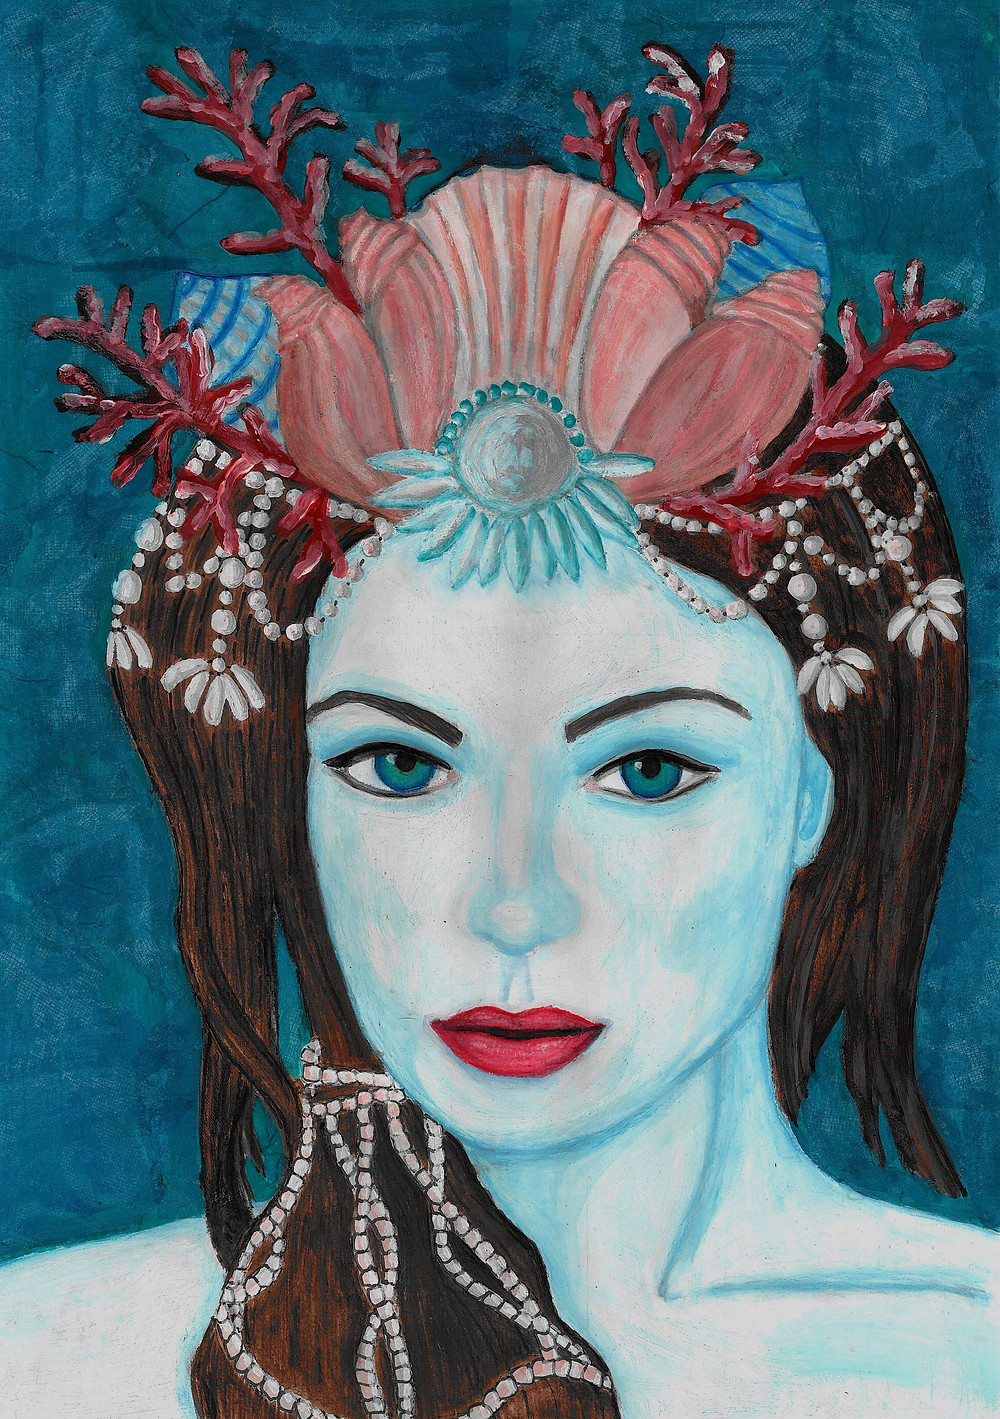 mermaid Jewel, blue faced girl with a shell crown